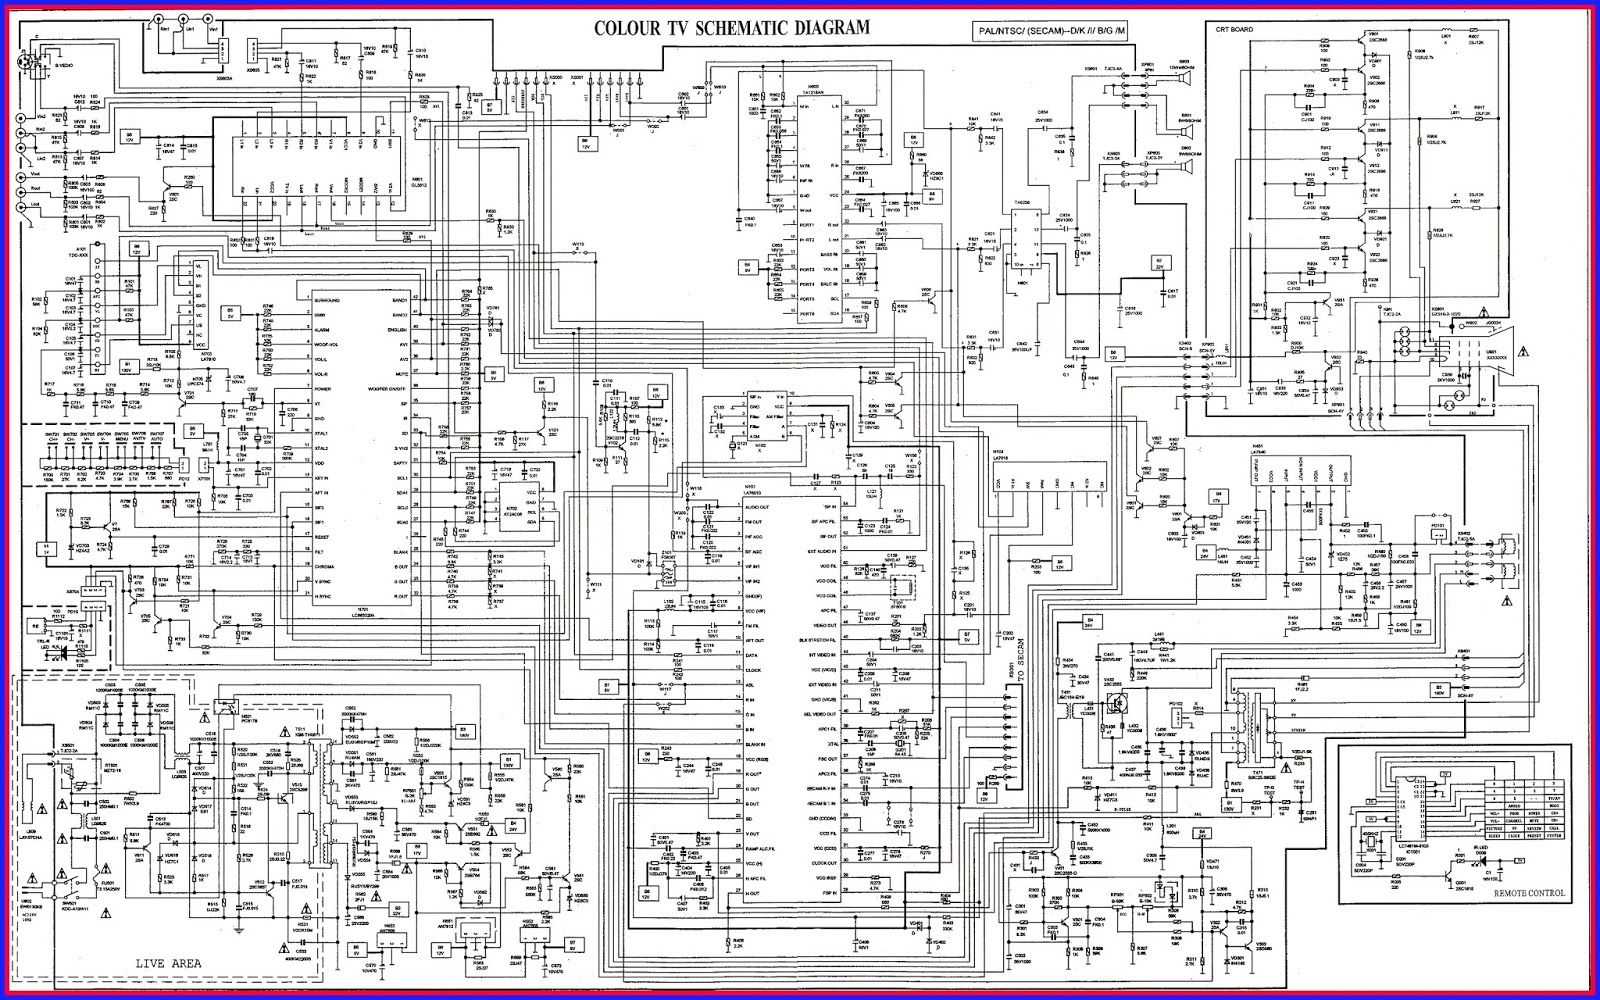 lg tv connection diagram schema diagram preview lg tv connection diagram [ 1600 x 1000 Pixel ]